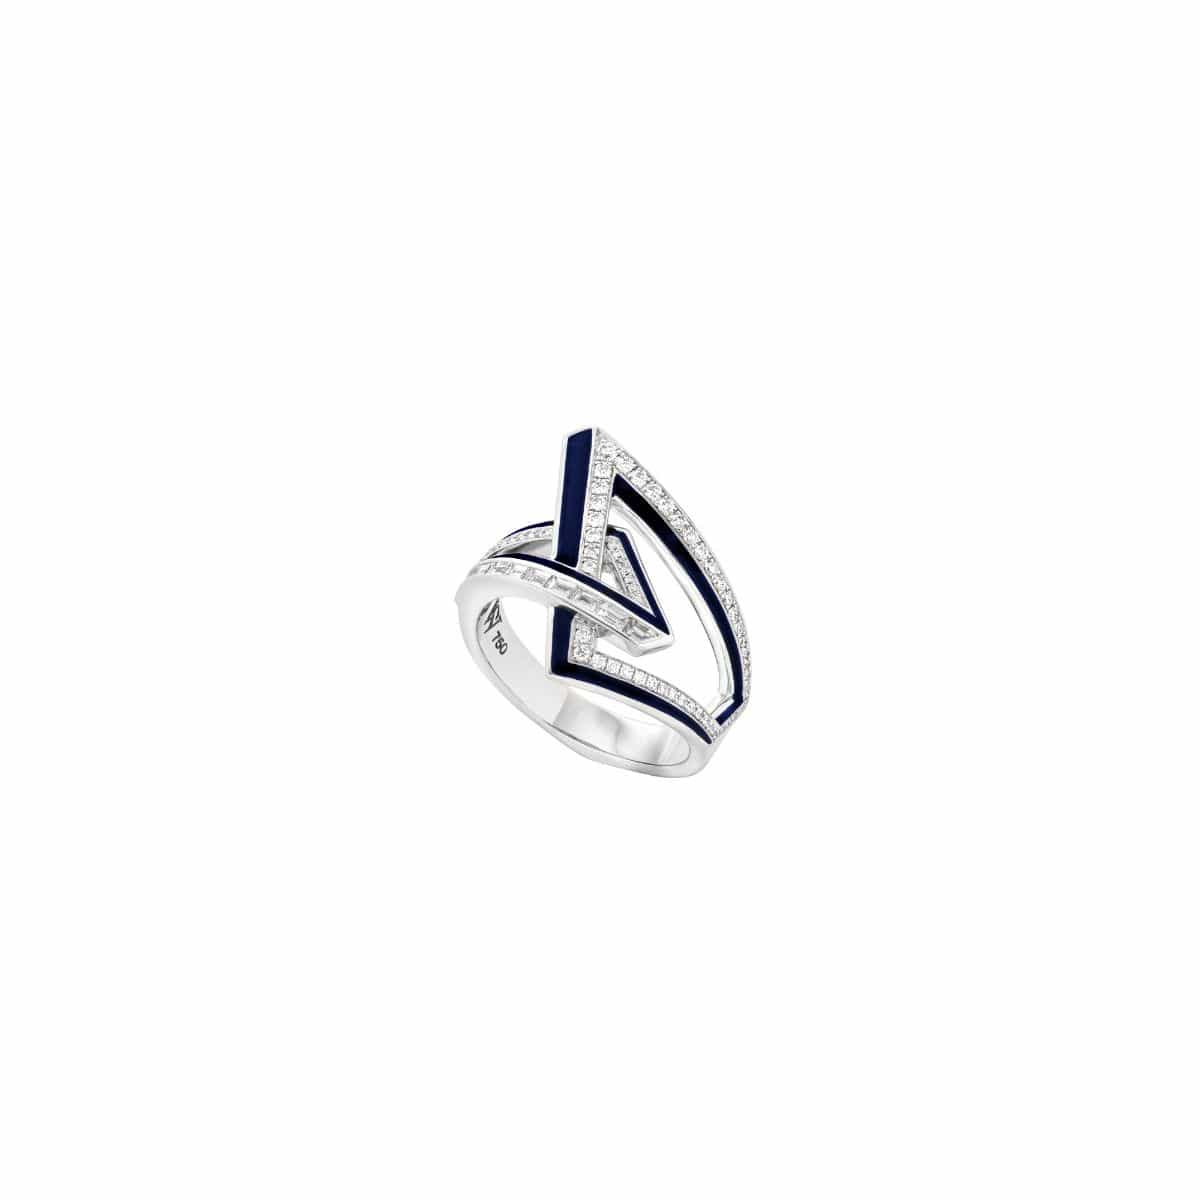 VERTIGO OBTUSE RING White Gold